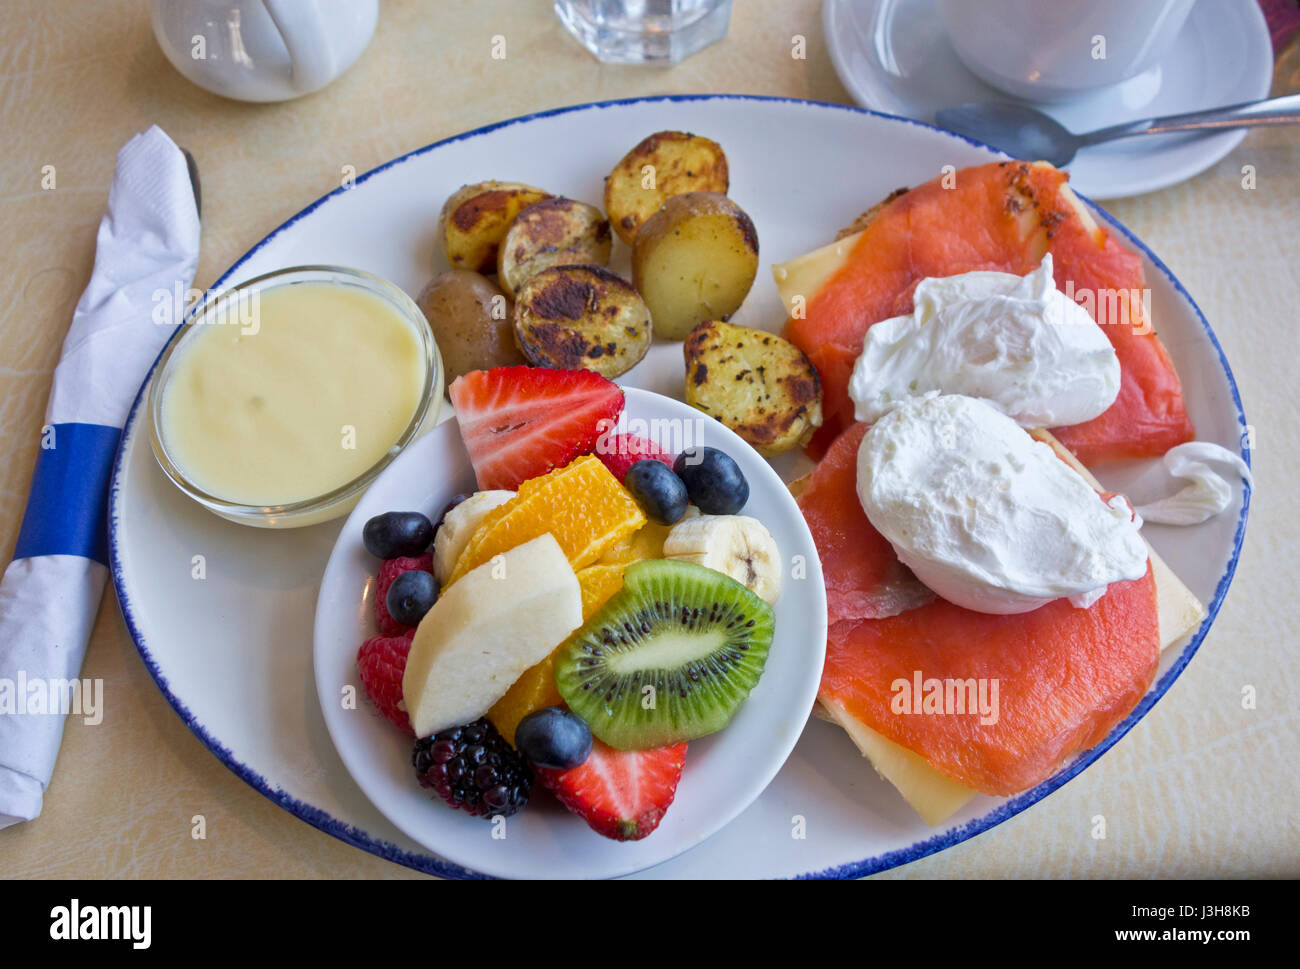 Delicious smoked salmon eggs benedict with fruit and potatoes.  Breakfast at Angelina's restaurant in New Westminster, - Stock Image